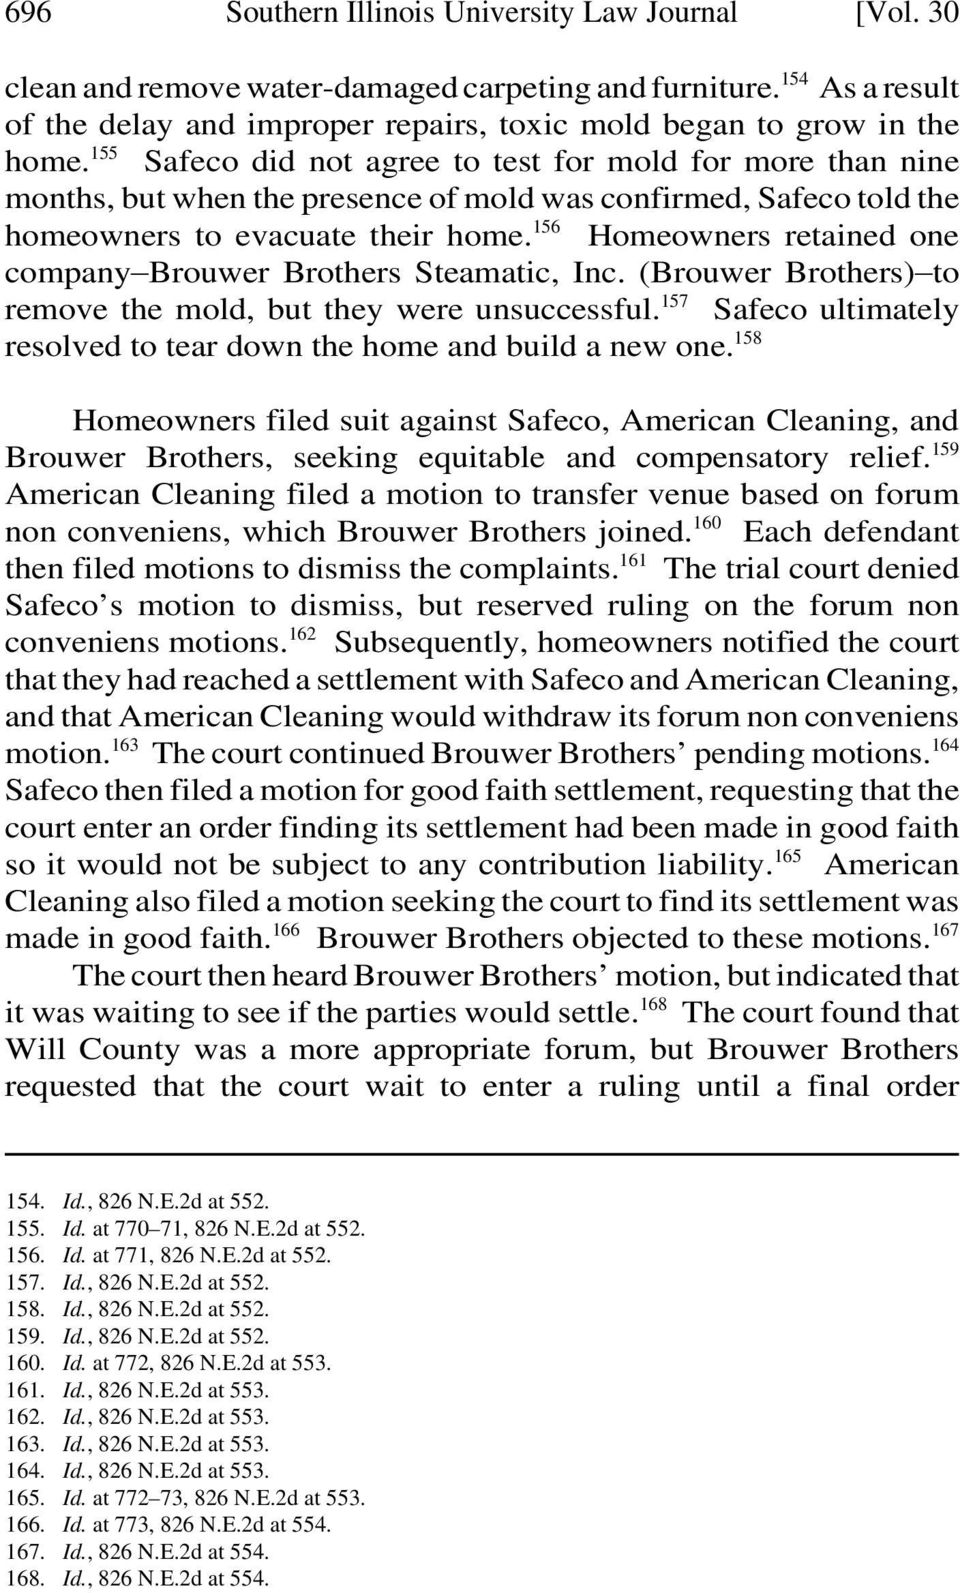 156 Homeowners retained one company)brouwer Brothers Steamatic, Inc. (Brouwer Brothers))to remove the mold, but they were unsuccessful.